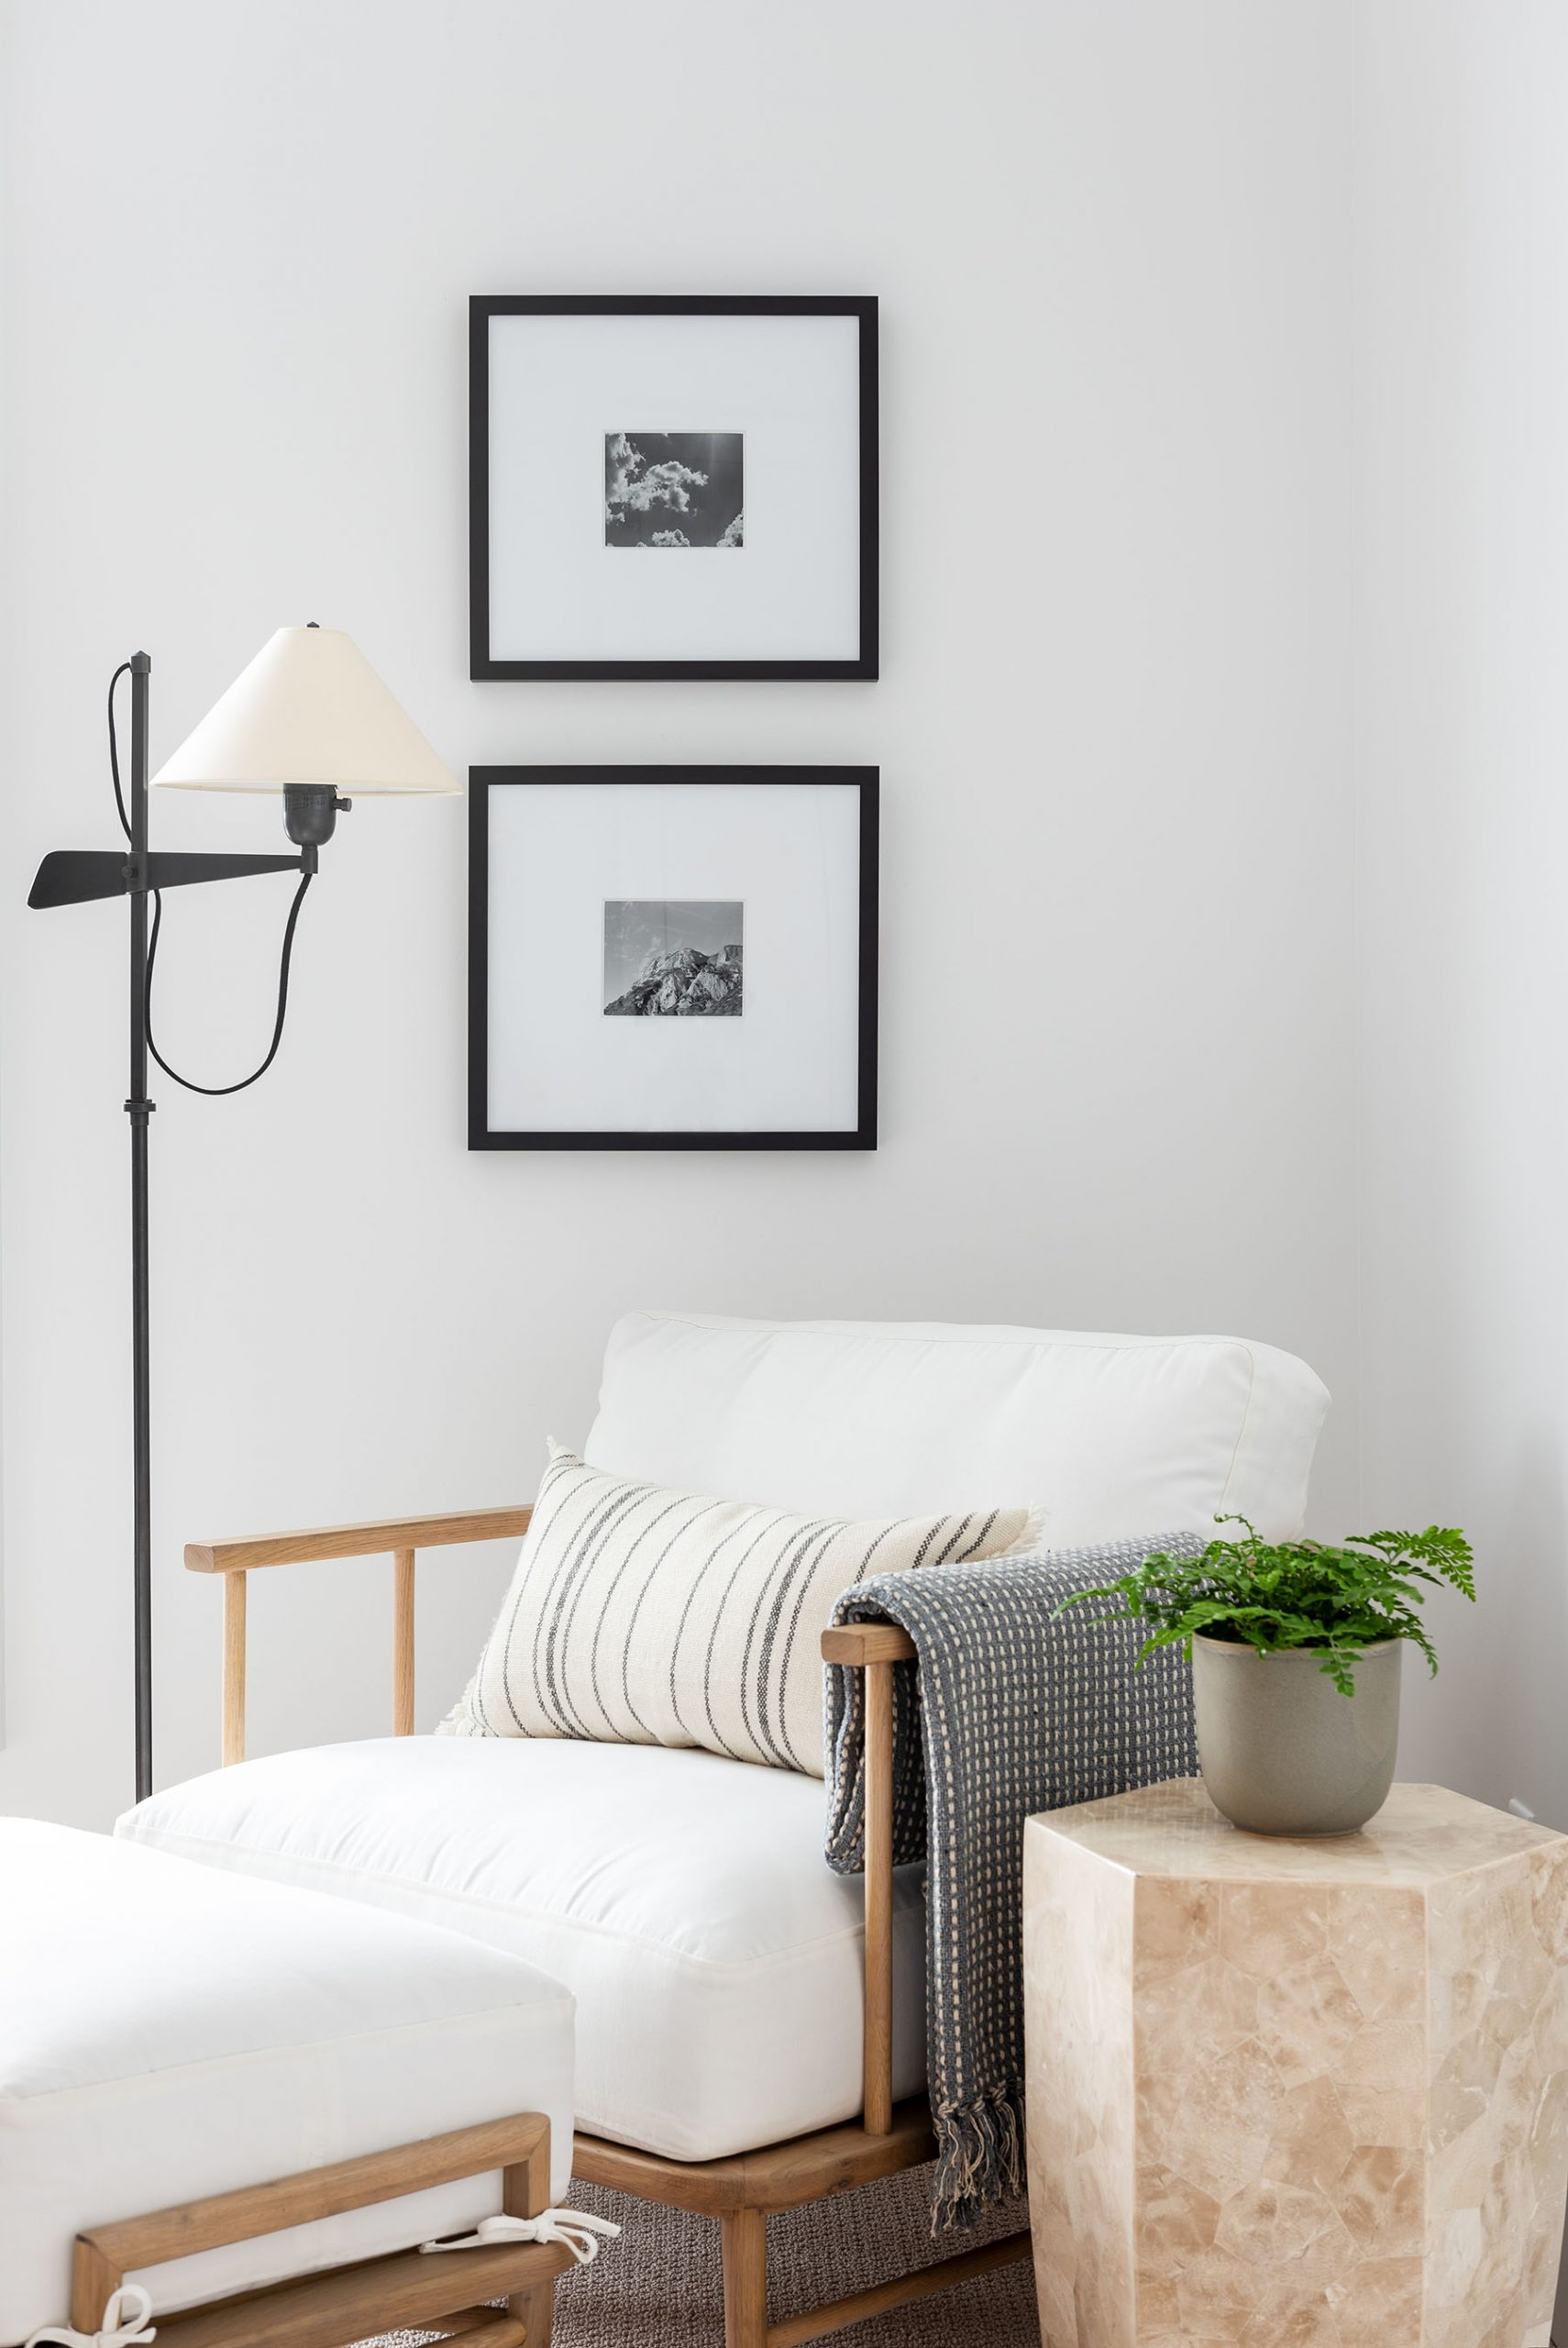 How To Hang Art Correctly – 3 Simple Tips